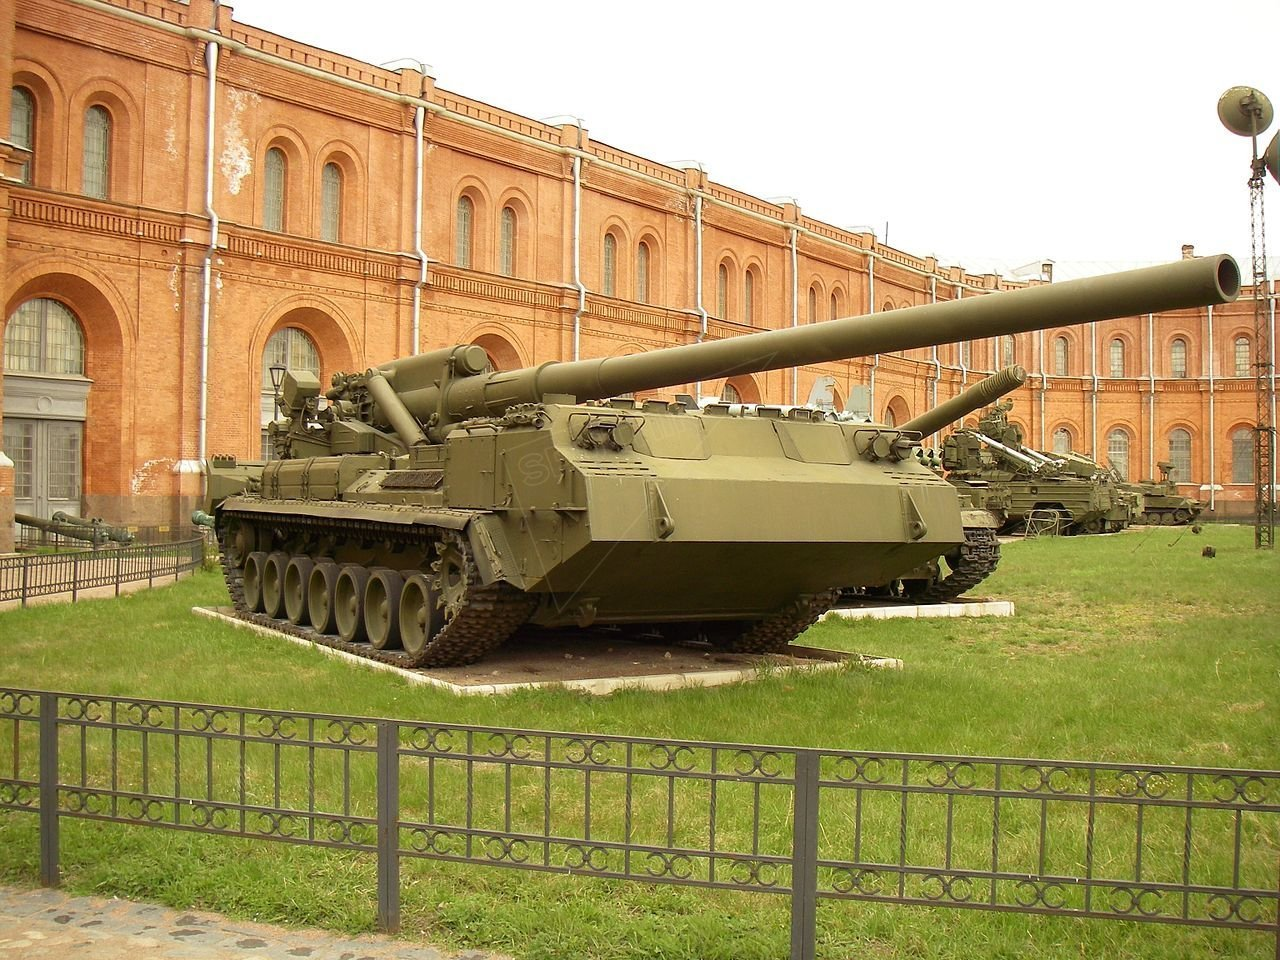 203-mm self-propelled gun 2S7 «Pion» in Saint-Petersburg Artillery museum